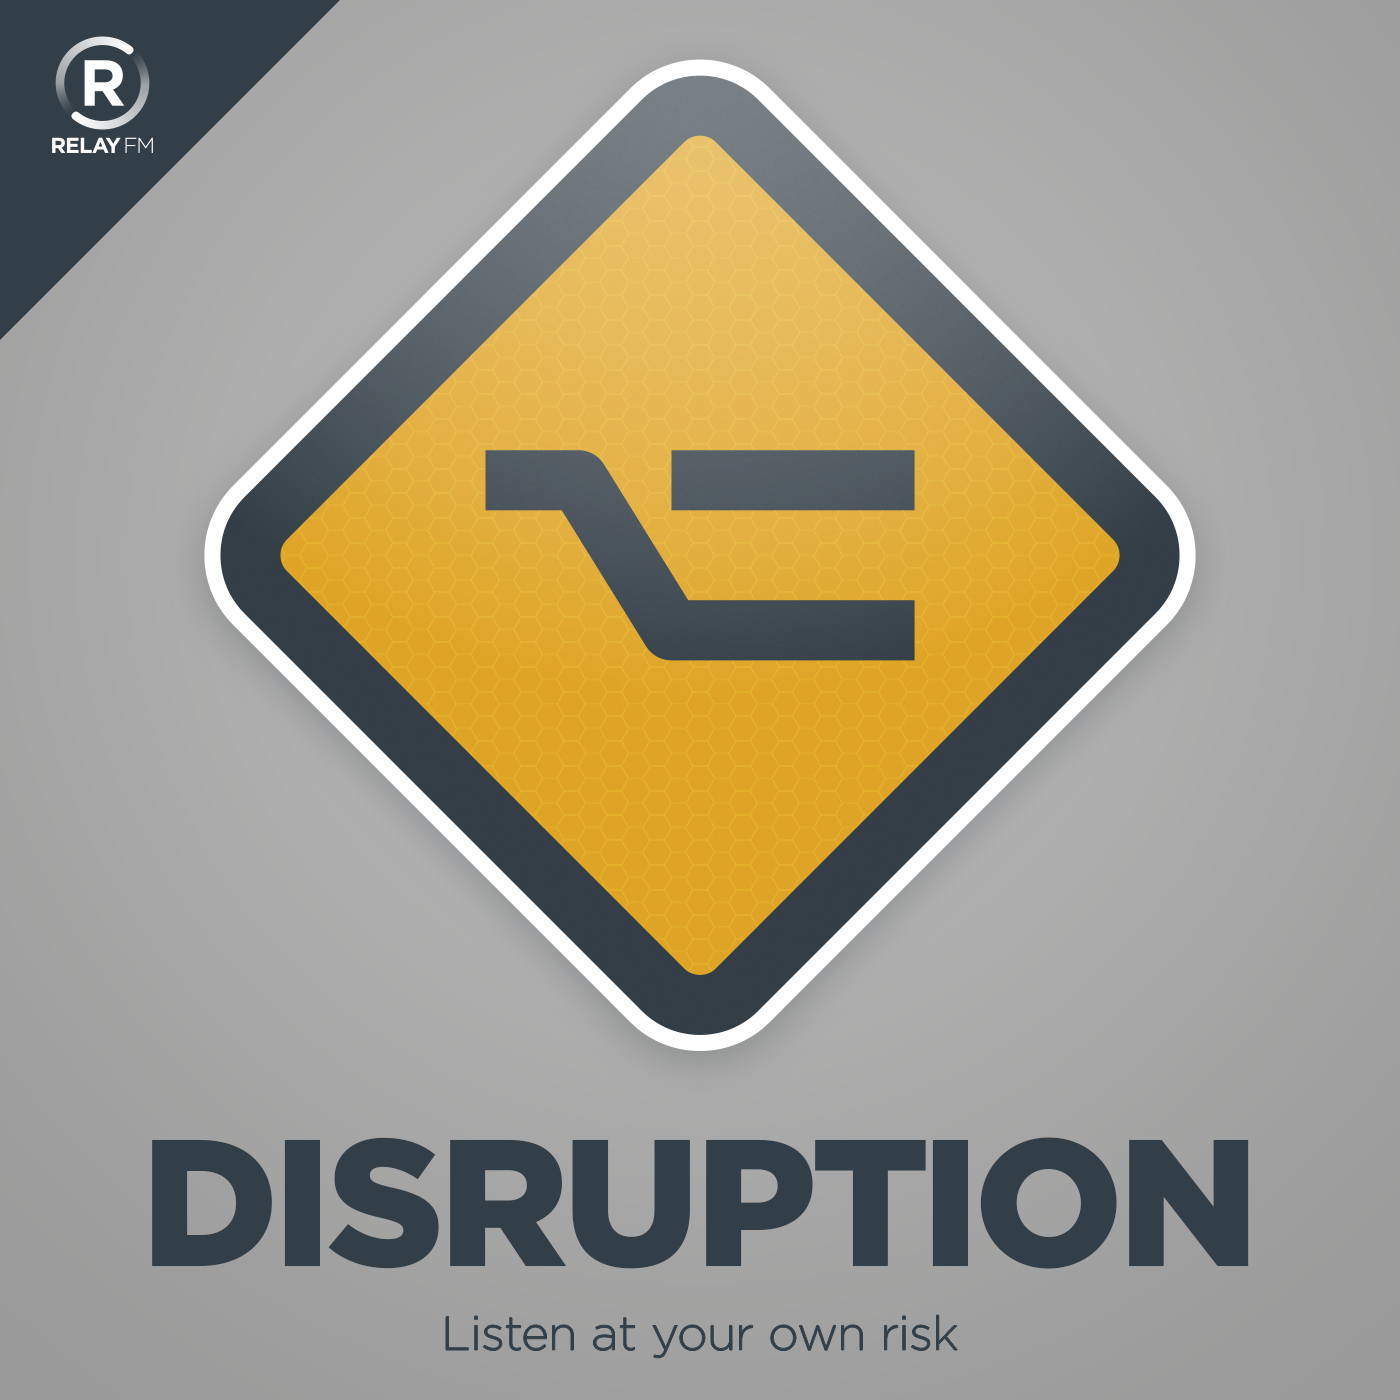 Broadcast artwork disruption artwork